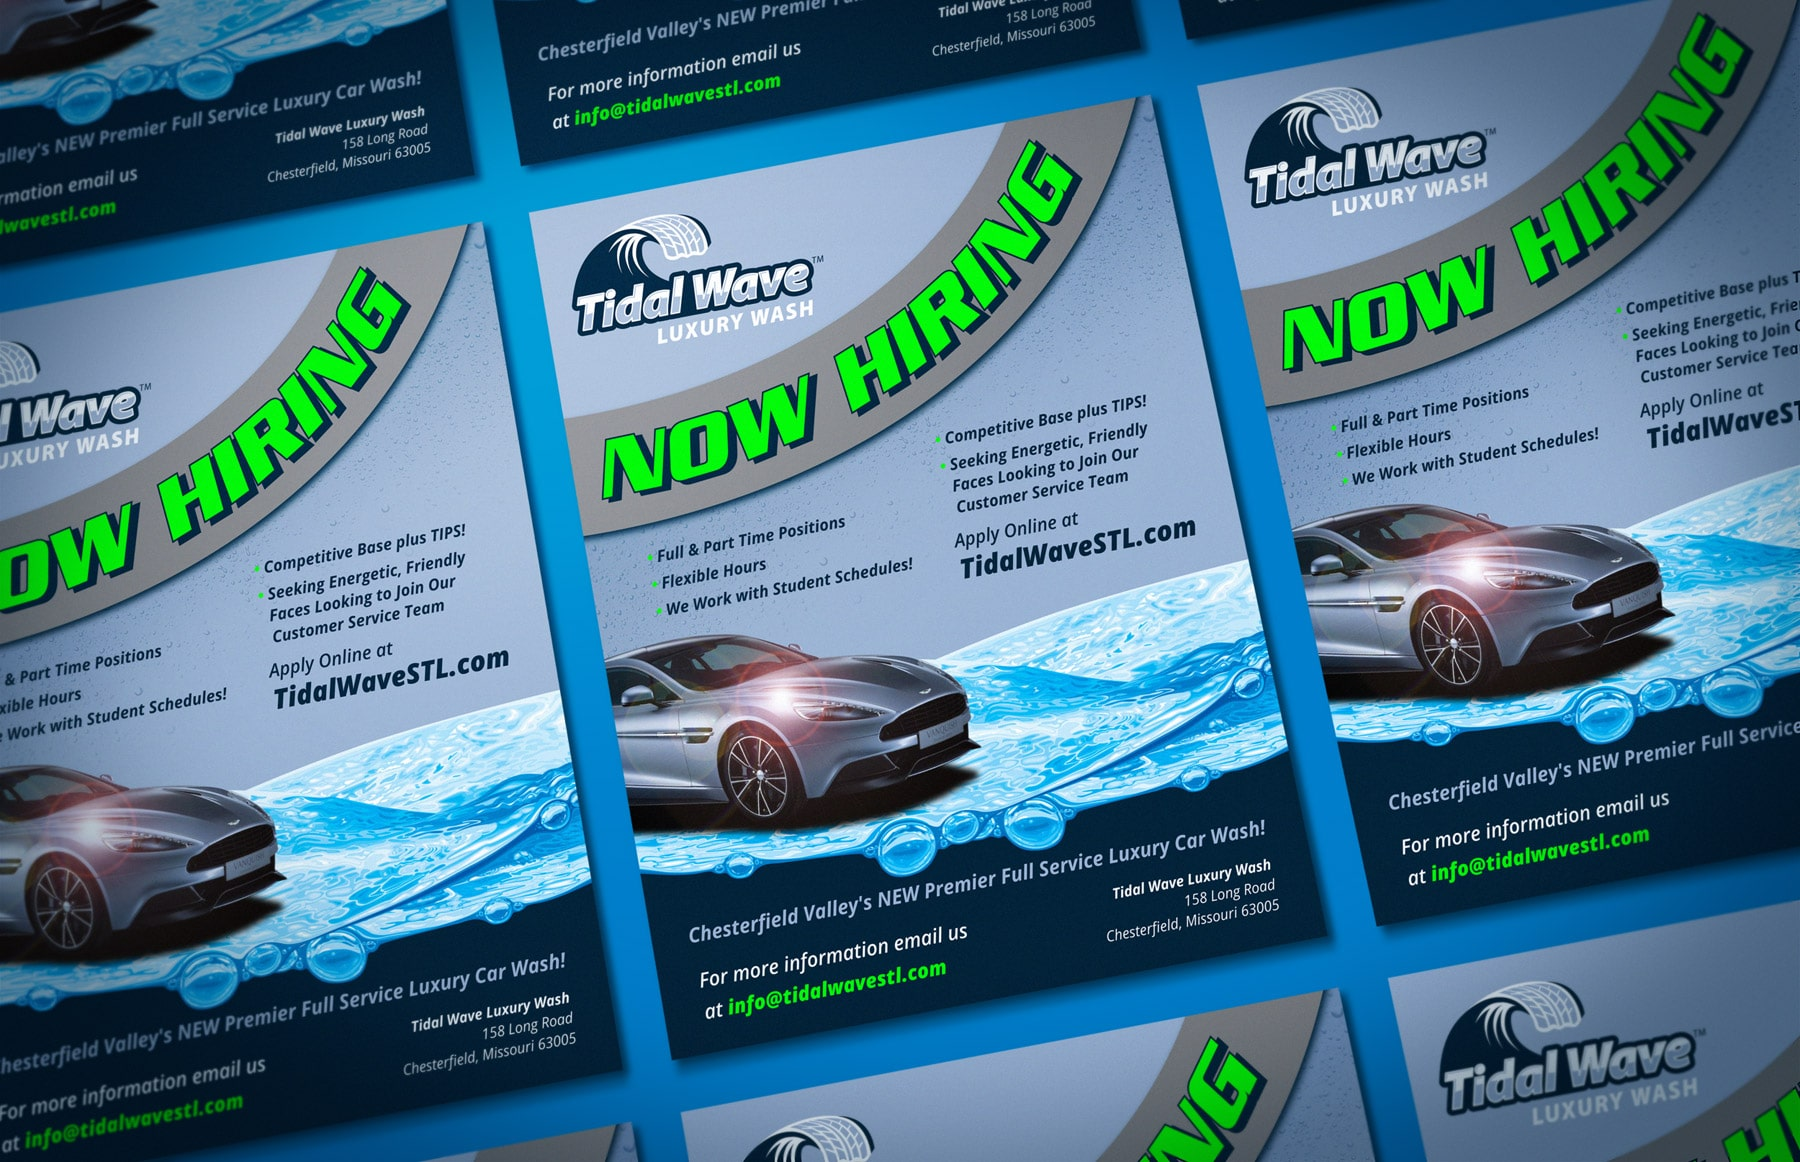 Tidal Wave Now Hiring Flyer Design branding